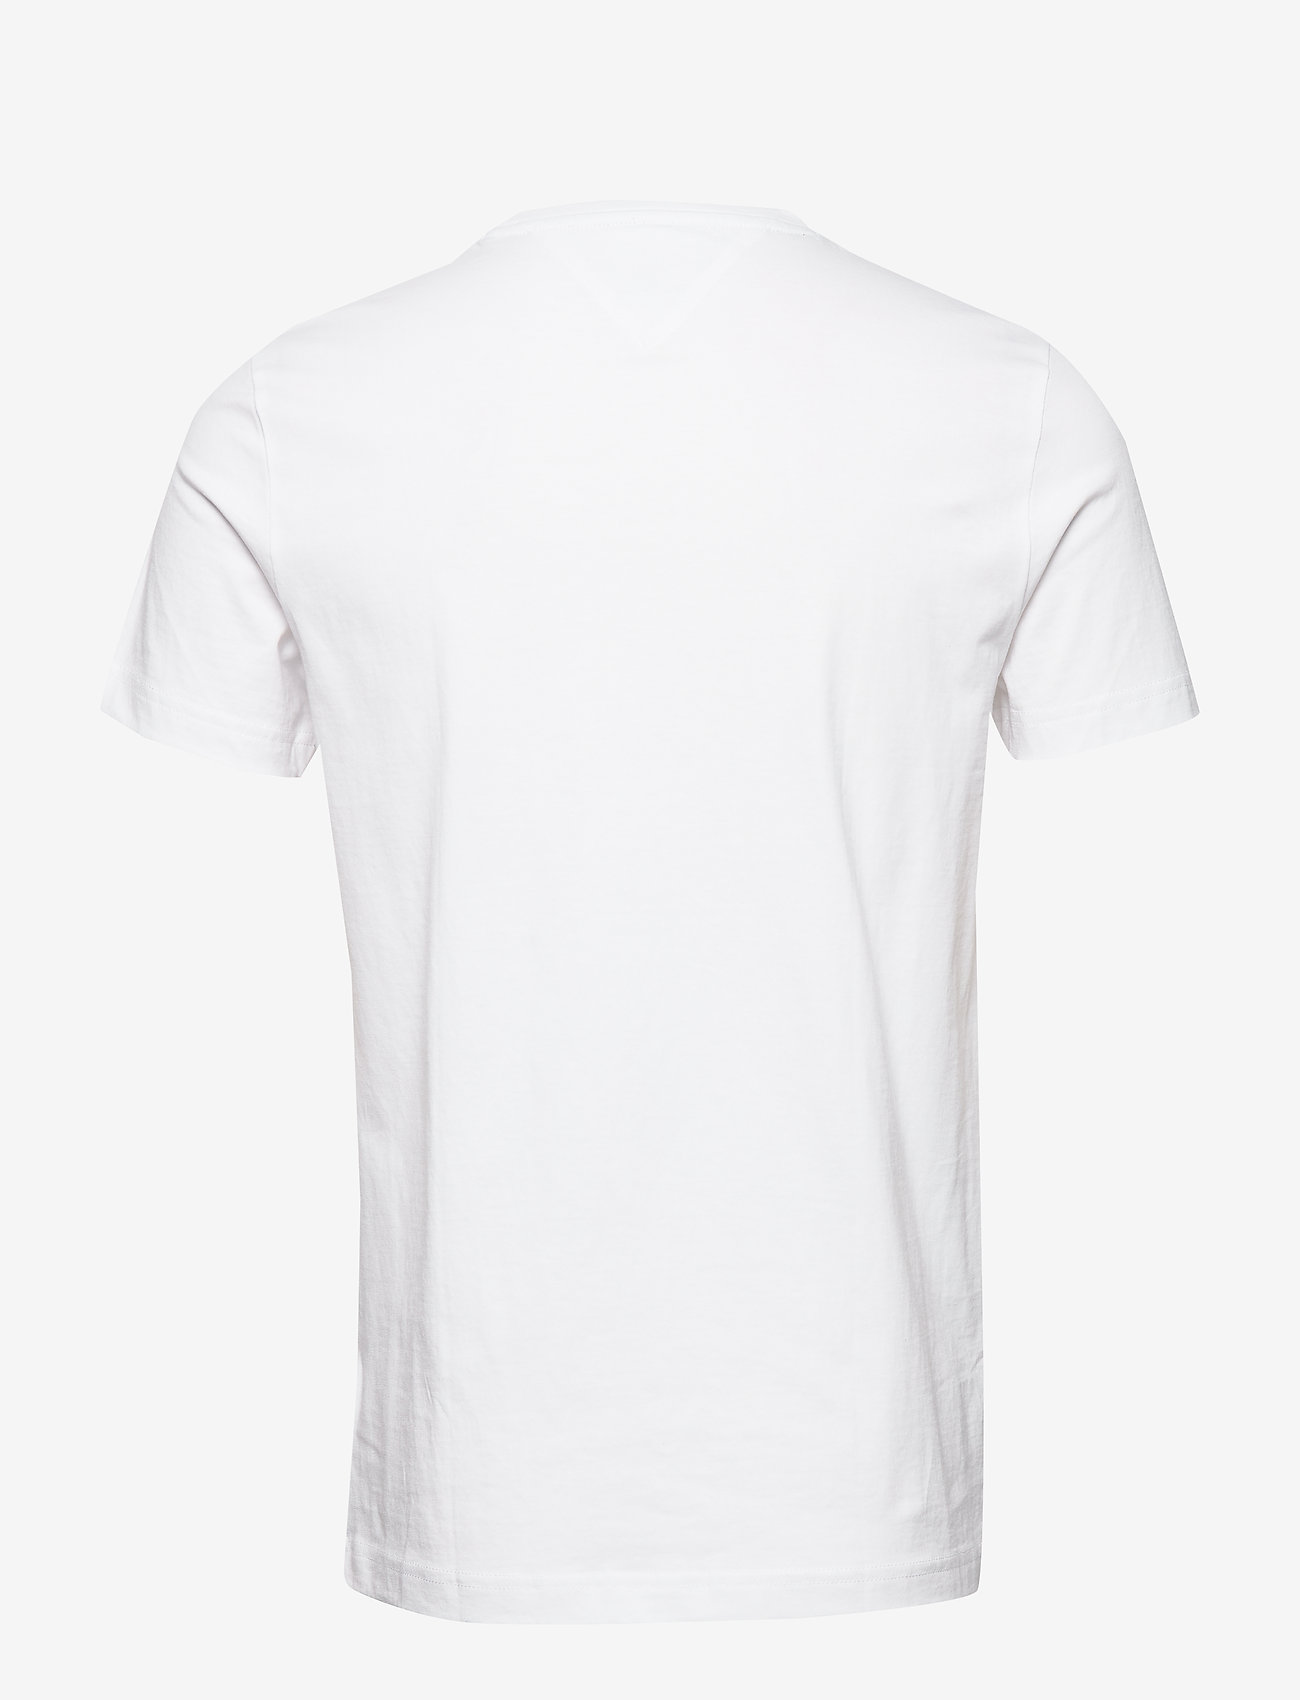 Tommy Hilfiger - CORP HILFIGER TEE - short-sleeved t-shirts - white